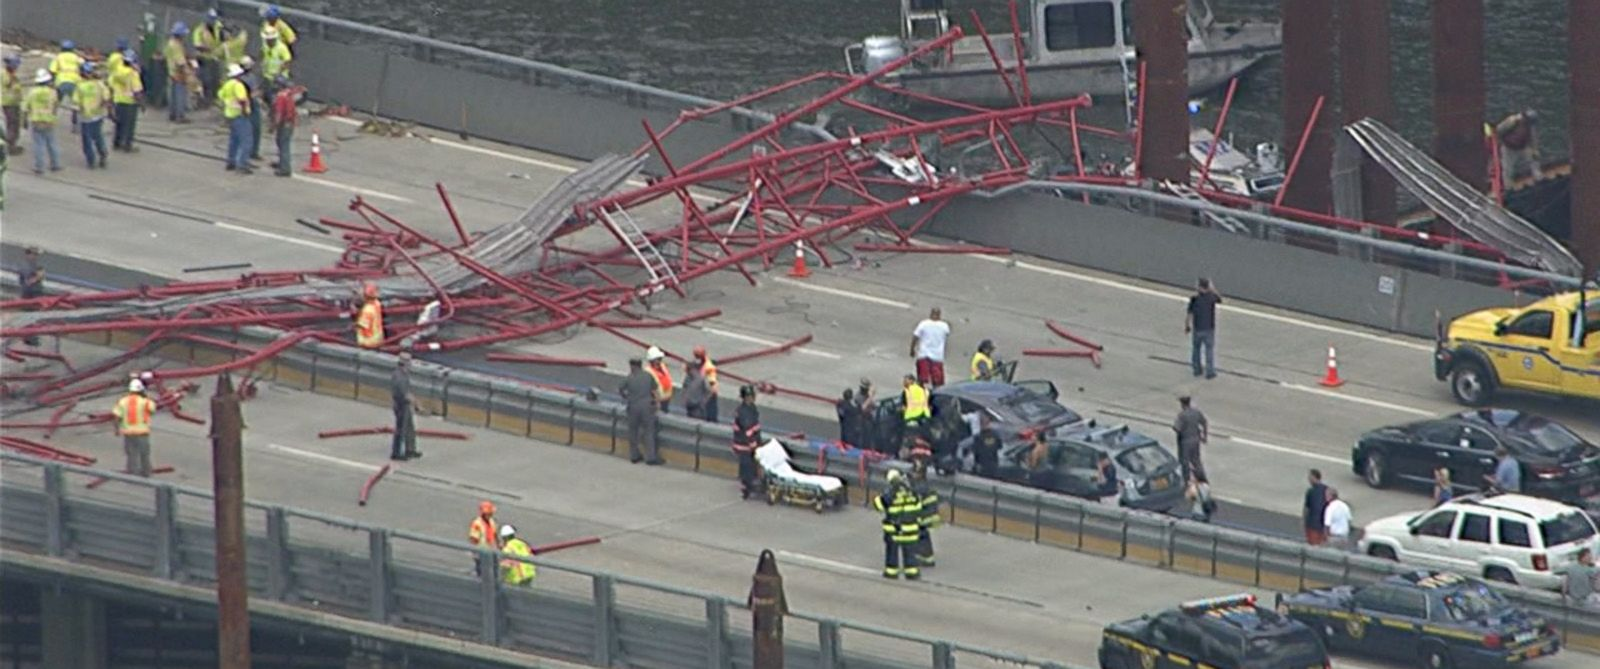 wabc_tappan_zee_bridge_crane_collapse_jc_160719_31x13_1600